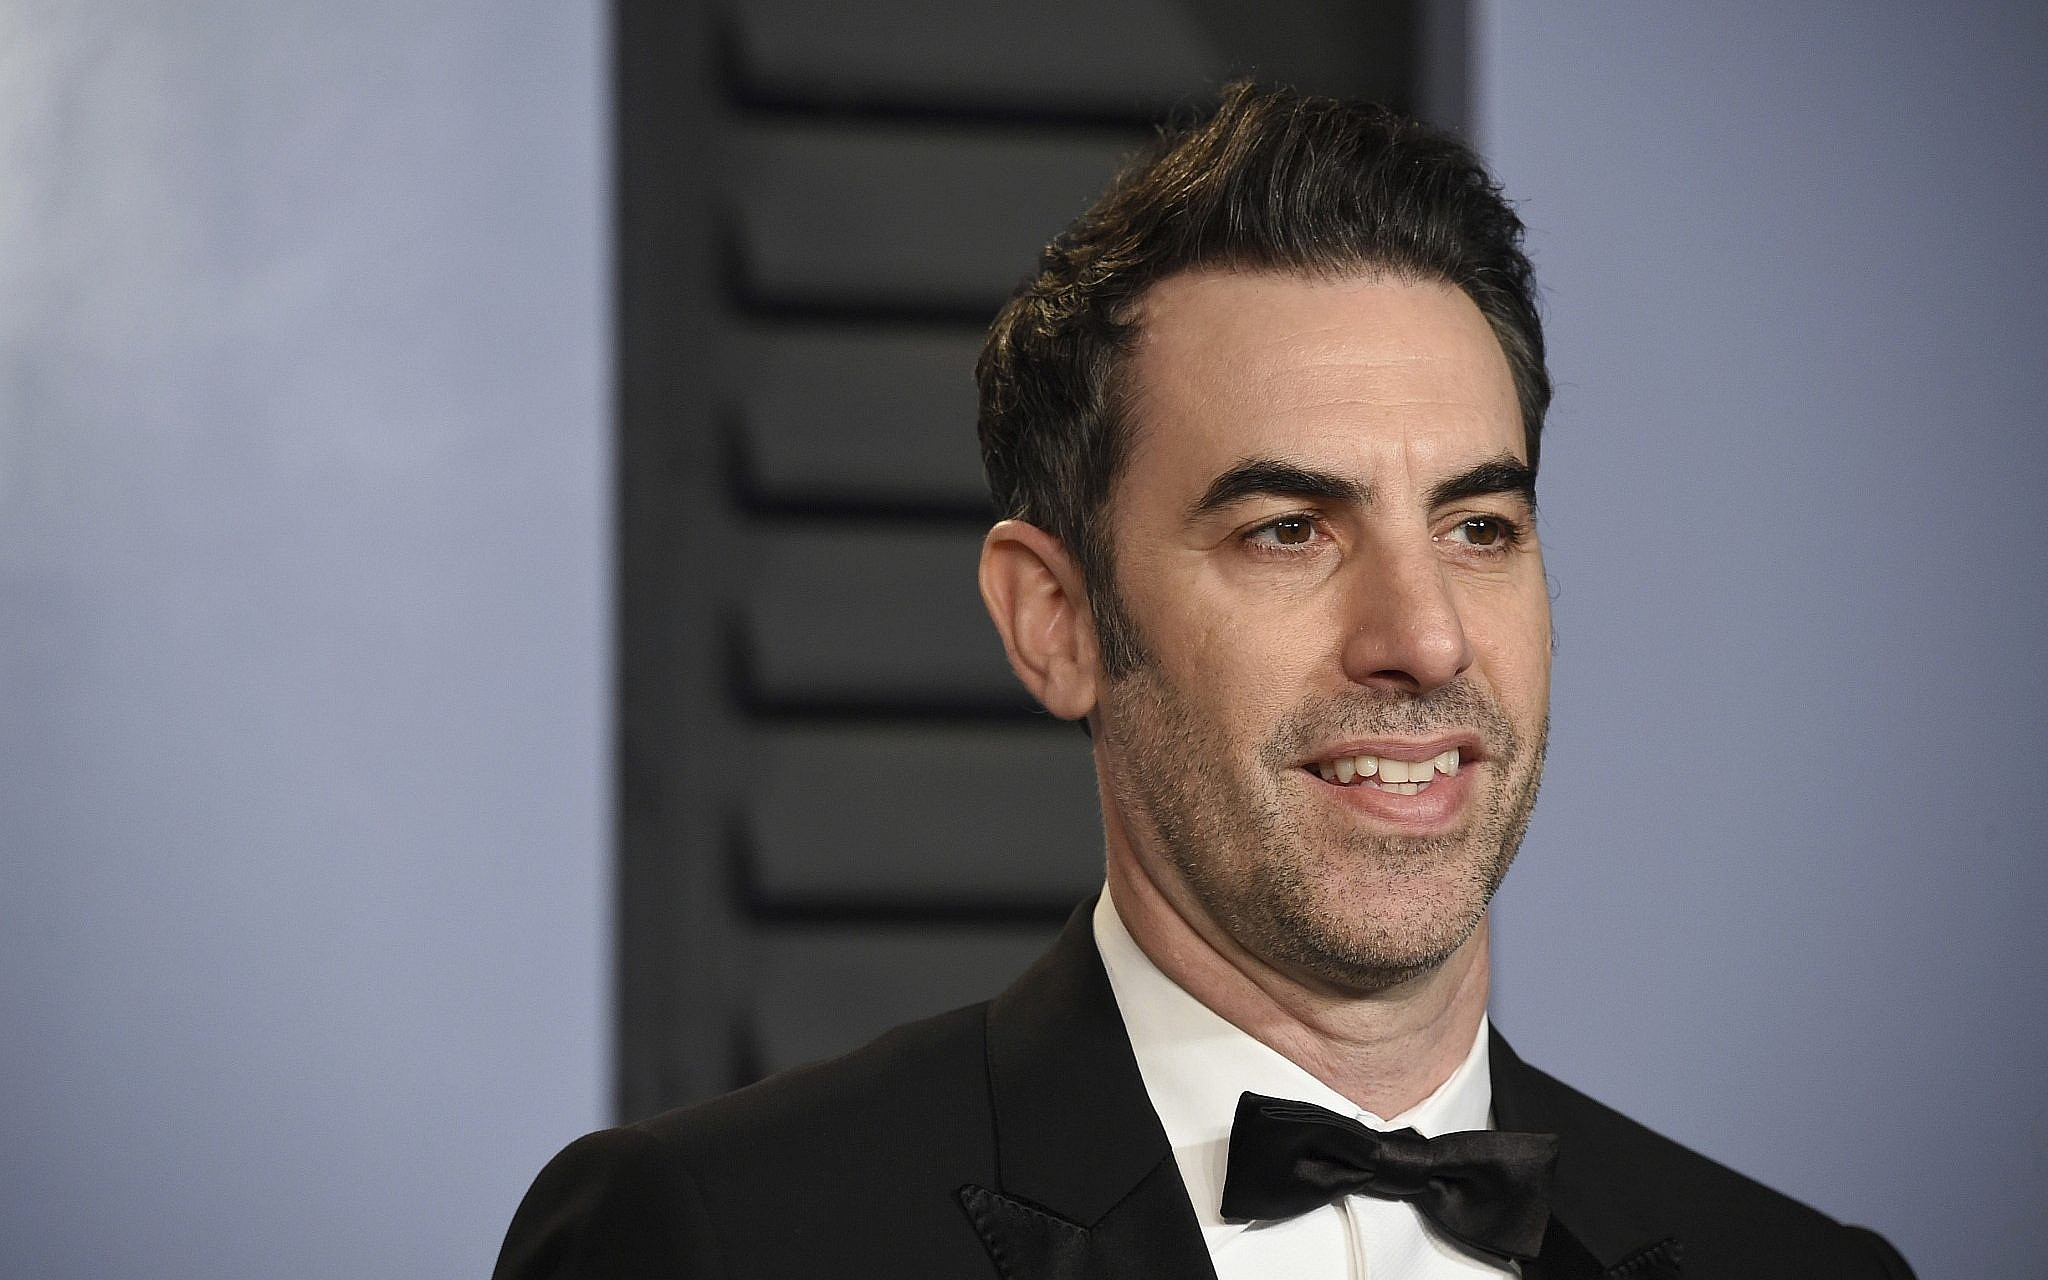 Sacha Baron Cohen has new Showtime show Who Is America? incoming